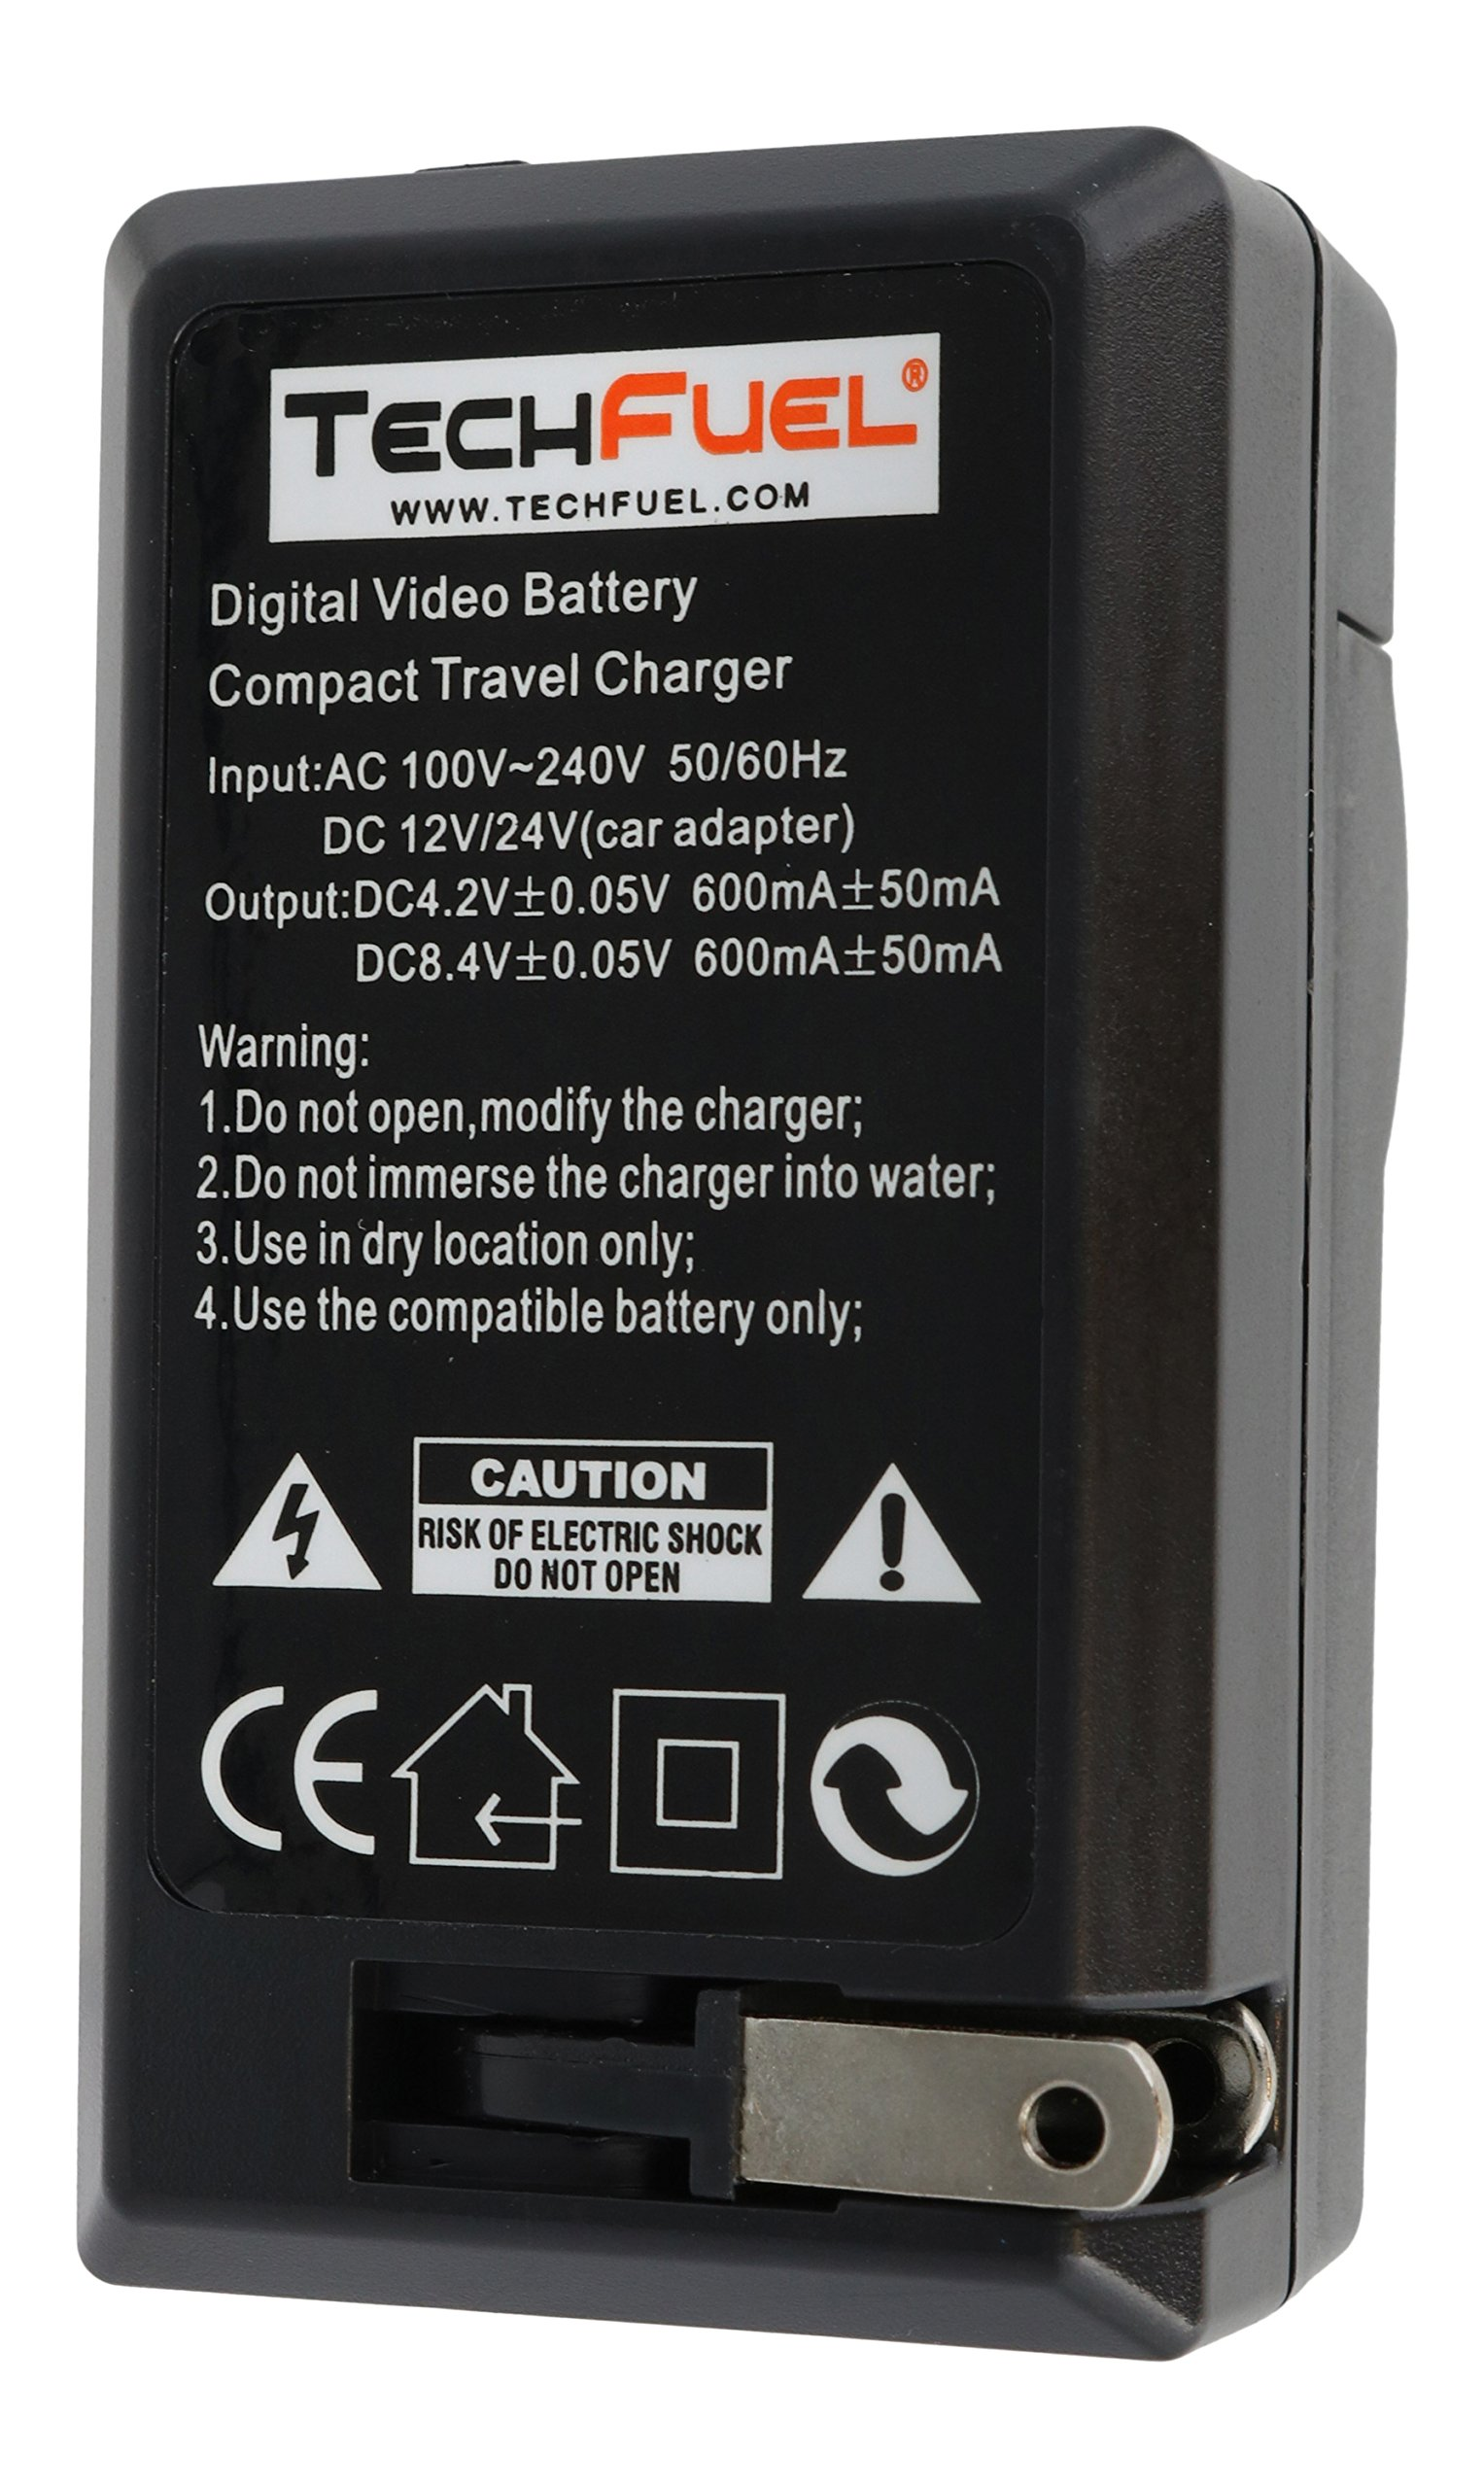 TechFuel Battery Charger Kit for Panasonic HDC-HS9 Camcorder - For Home, Car and Travel Use by TechFuel (Image #7)